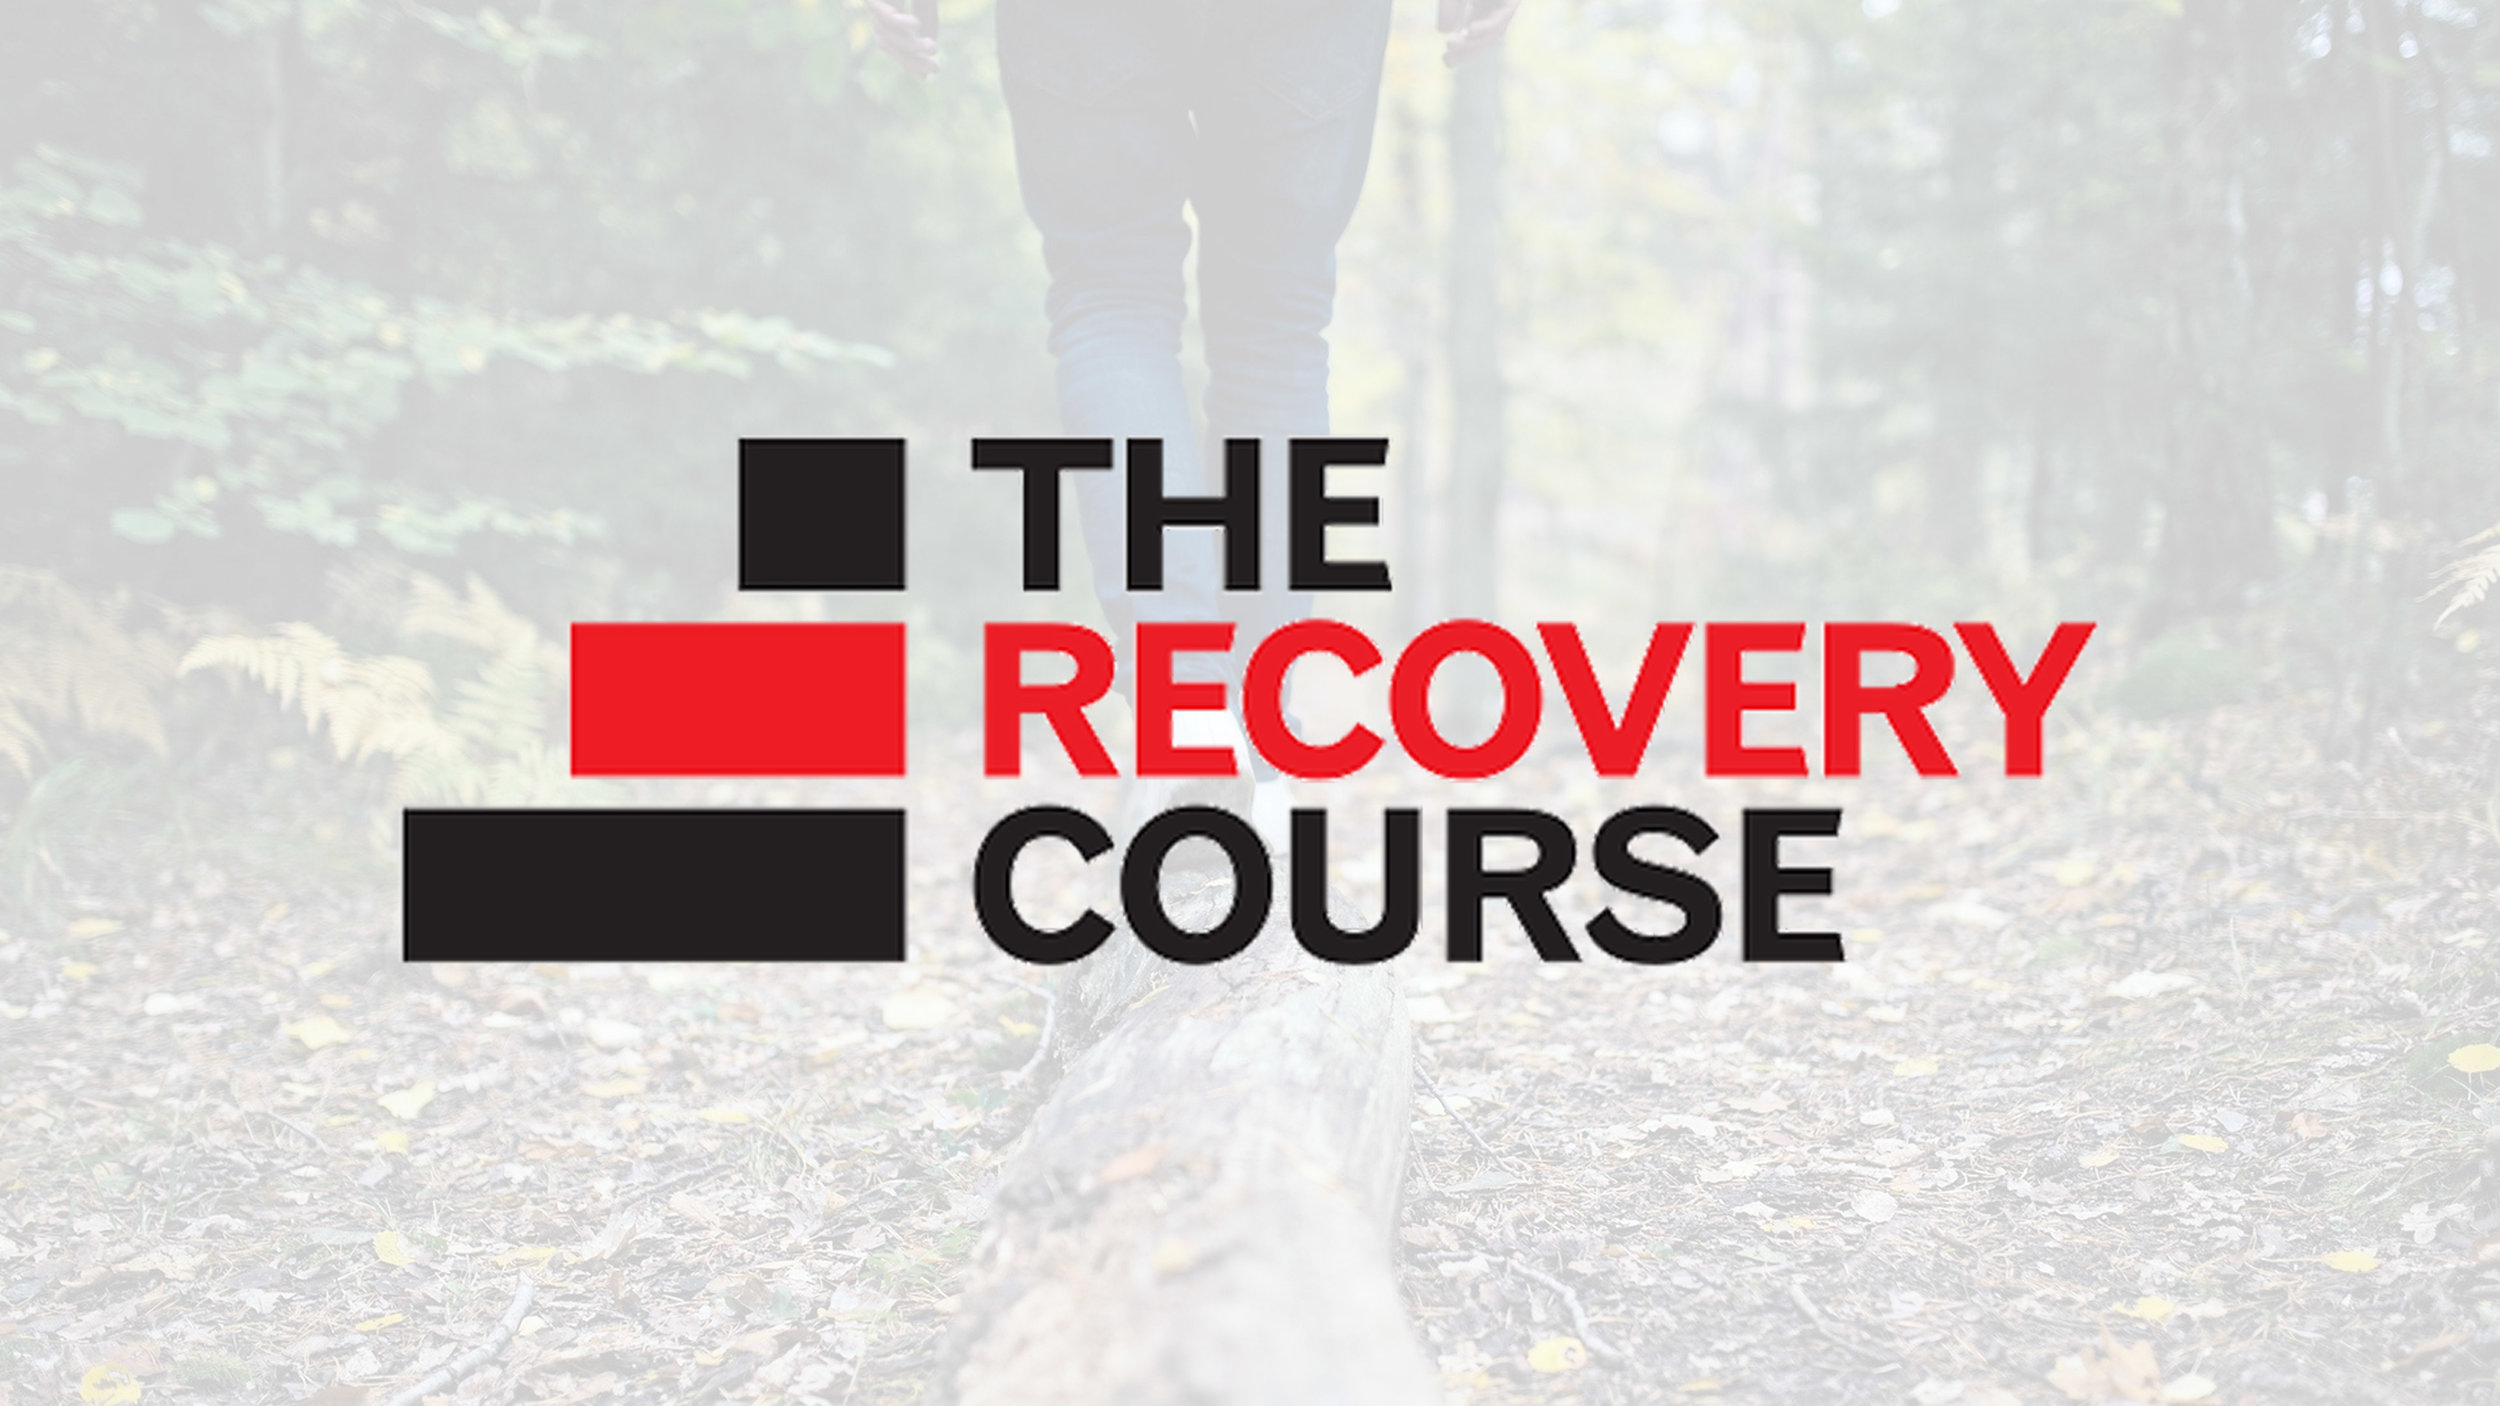 The Recovery Course - Overcome compulsive or addictive behaviours. A 12-step course leading you to freedom.